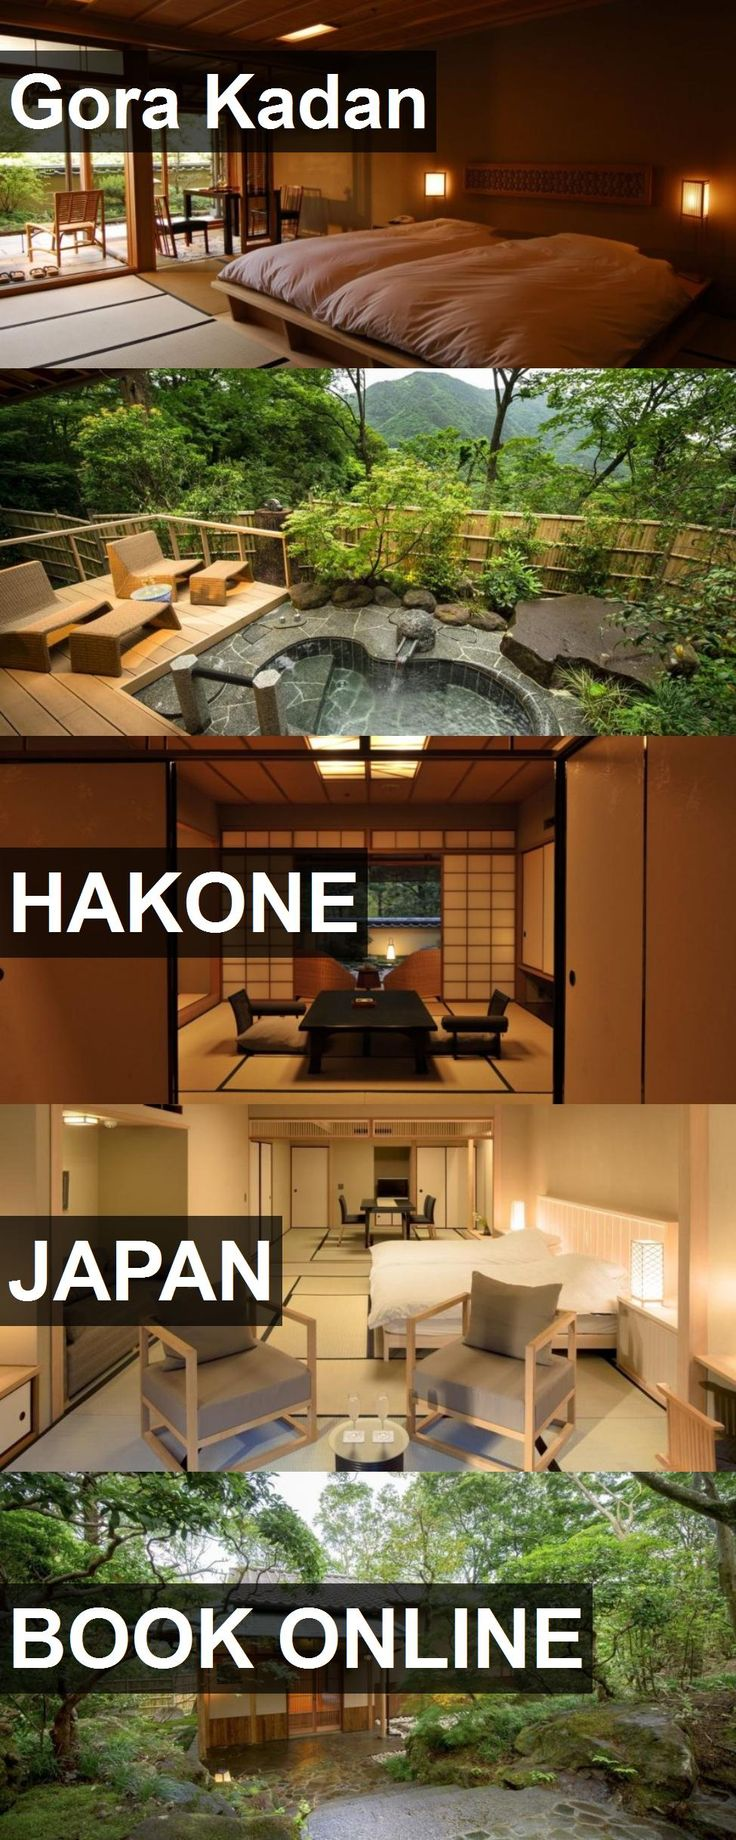 Hotel Gora Kadan in Hakone, Japan. For more information, photos, reviews and best prices please follow the link. #Japan #Hakone #travel #vacation #hotel